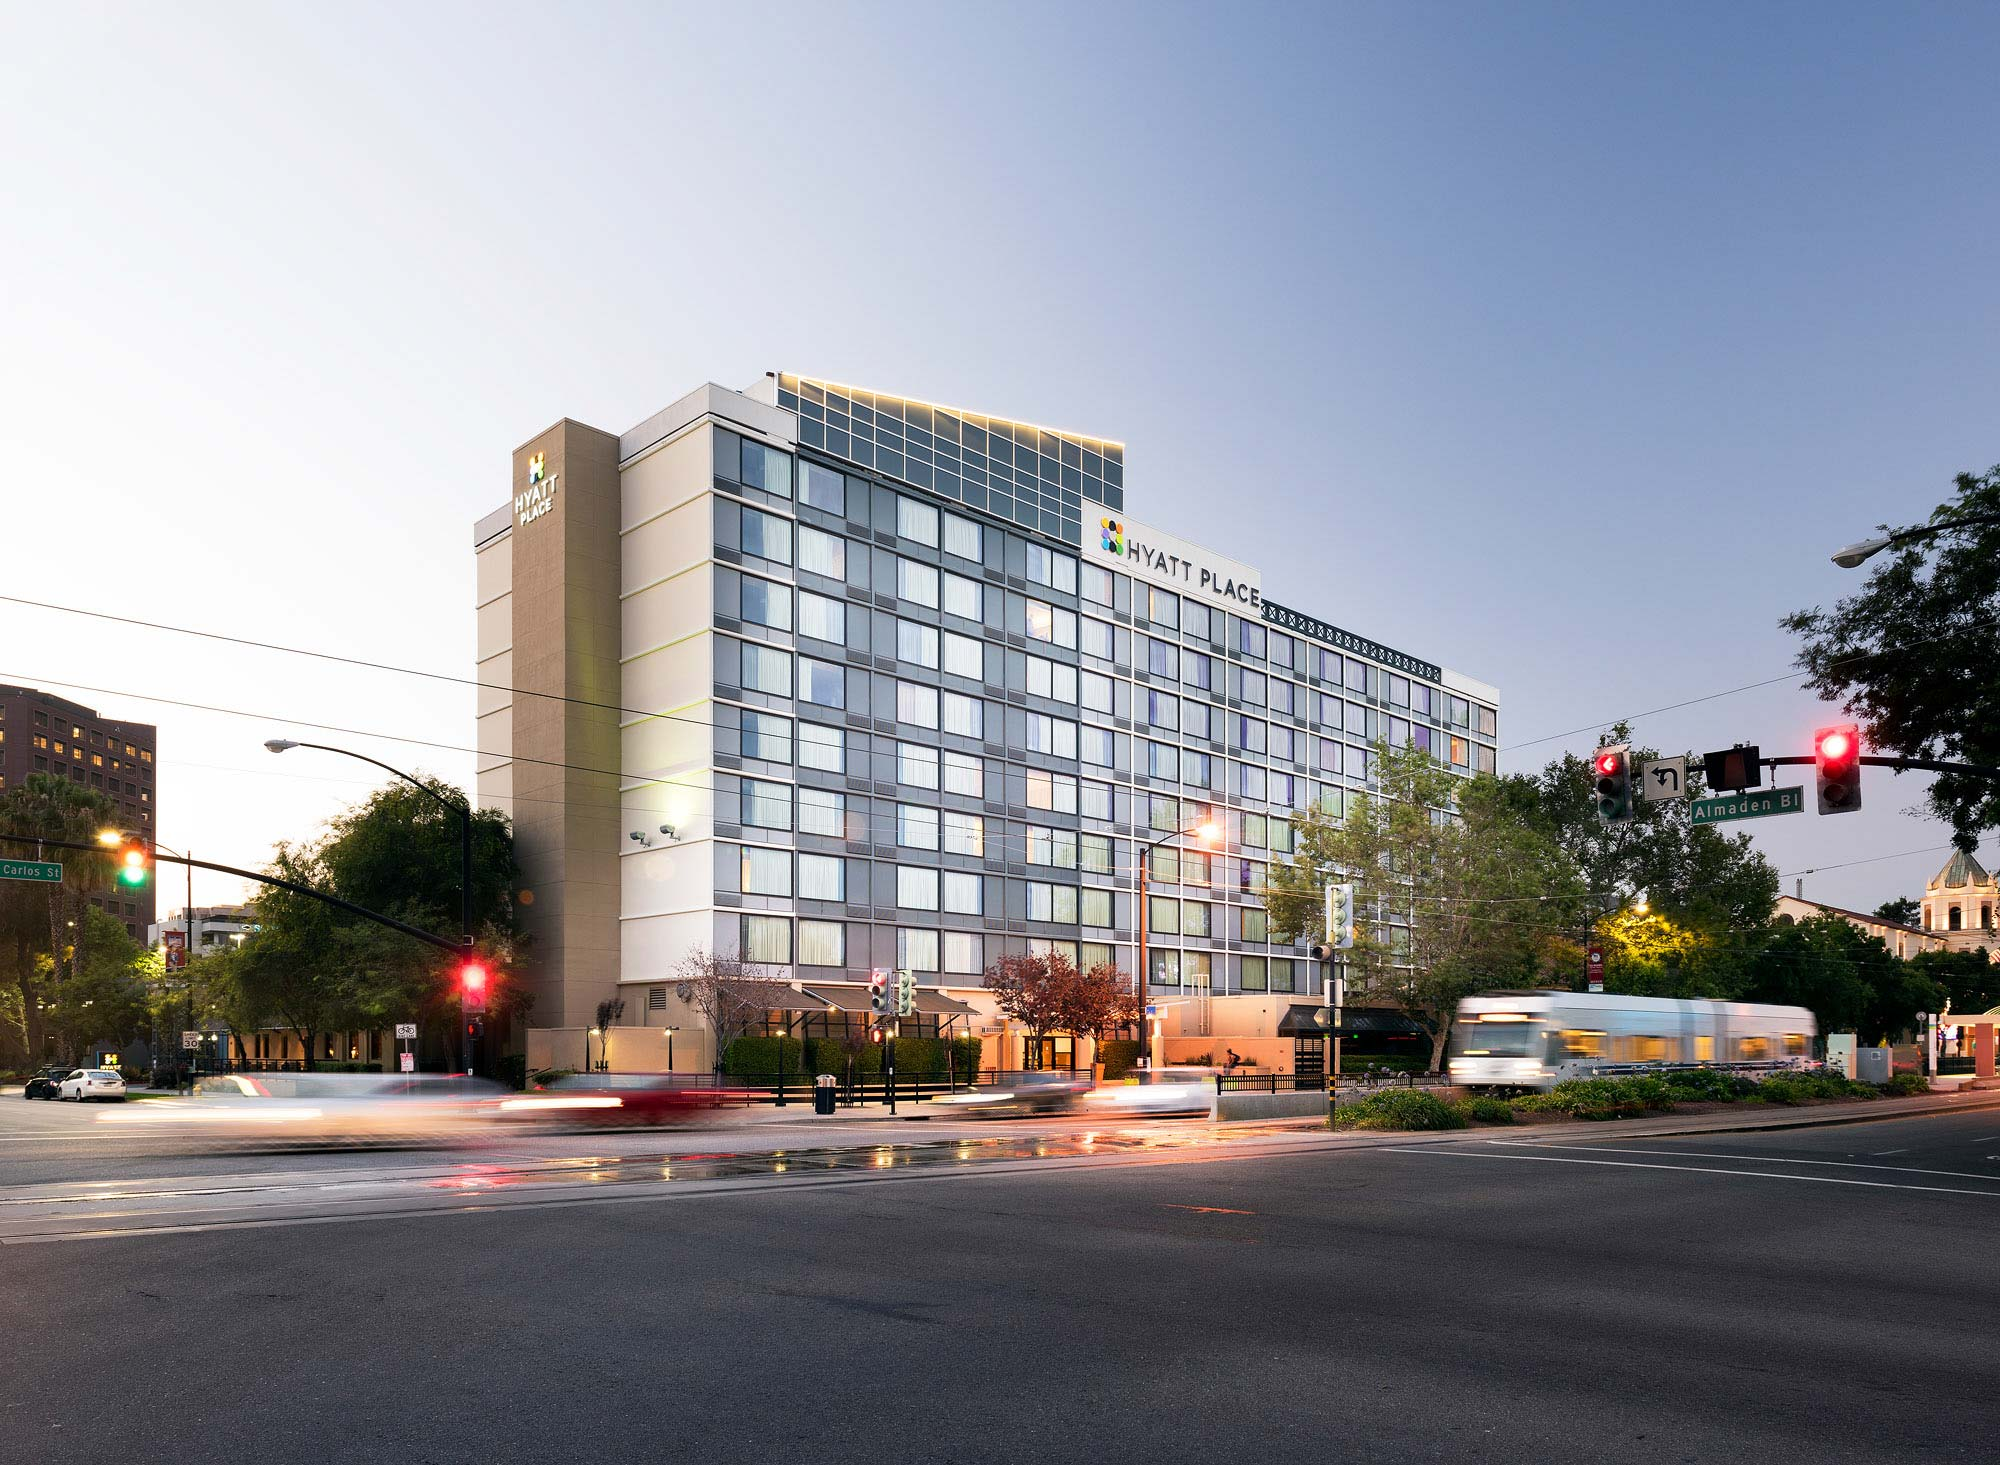 Hyatt Place Hotel in San Jose California